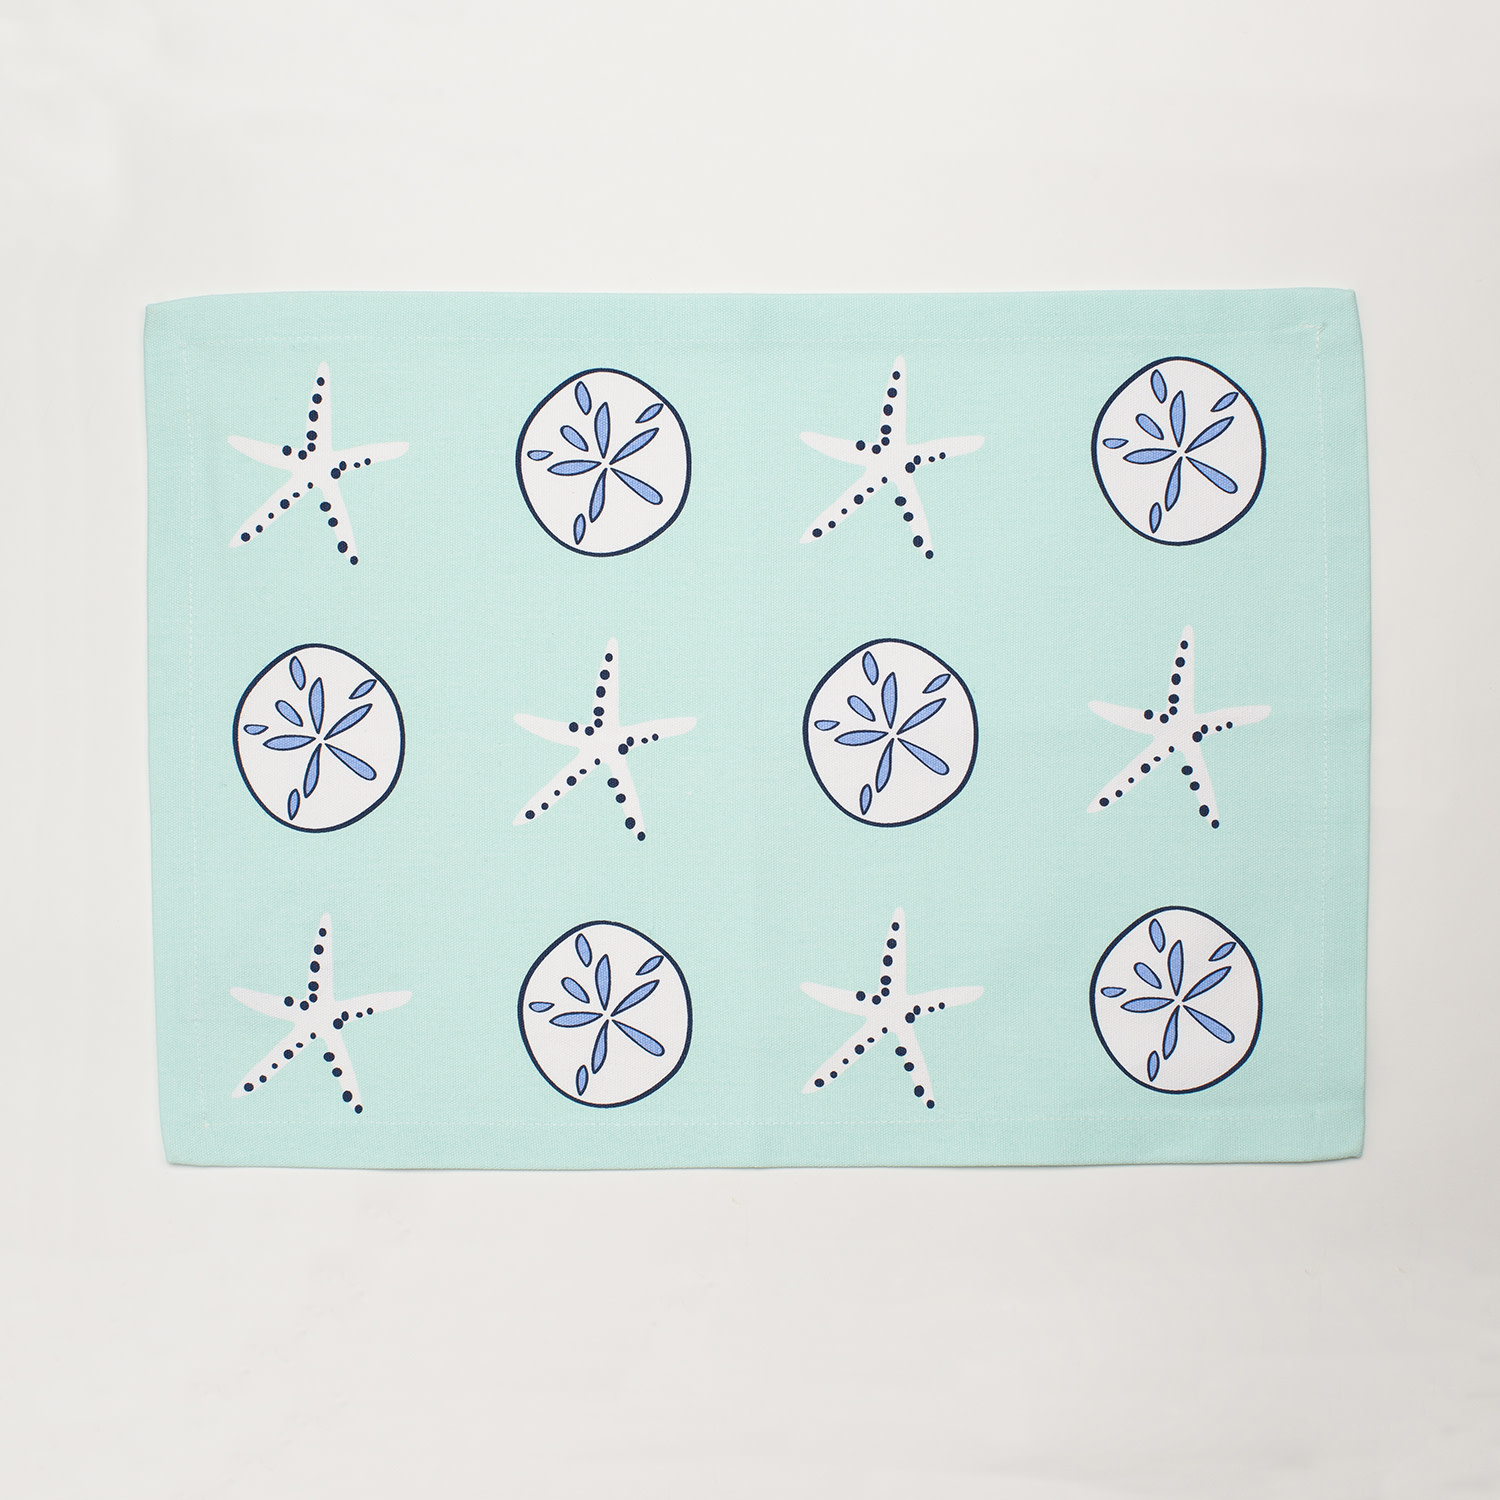 4 Piece Placemat Set - Aqua Shells